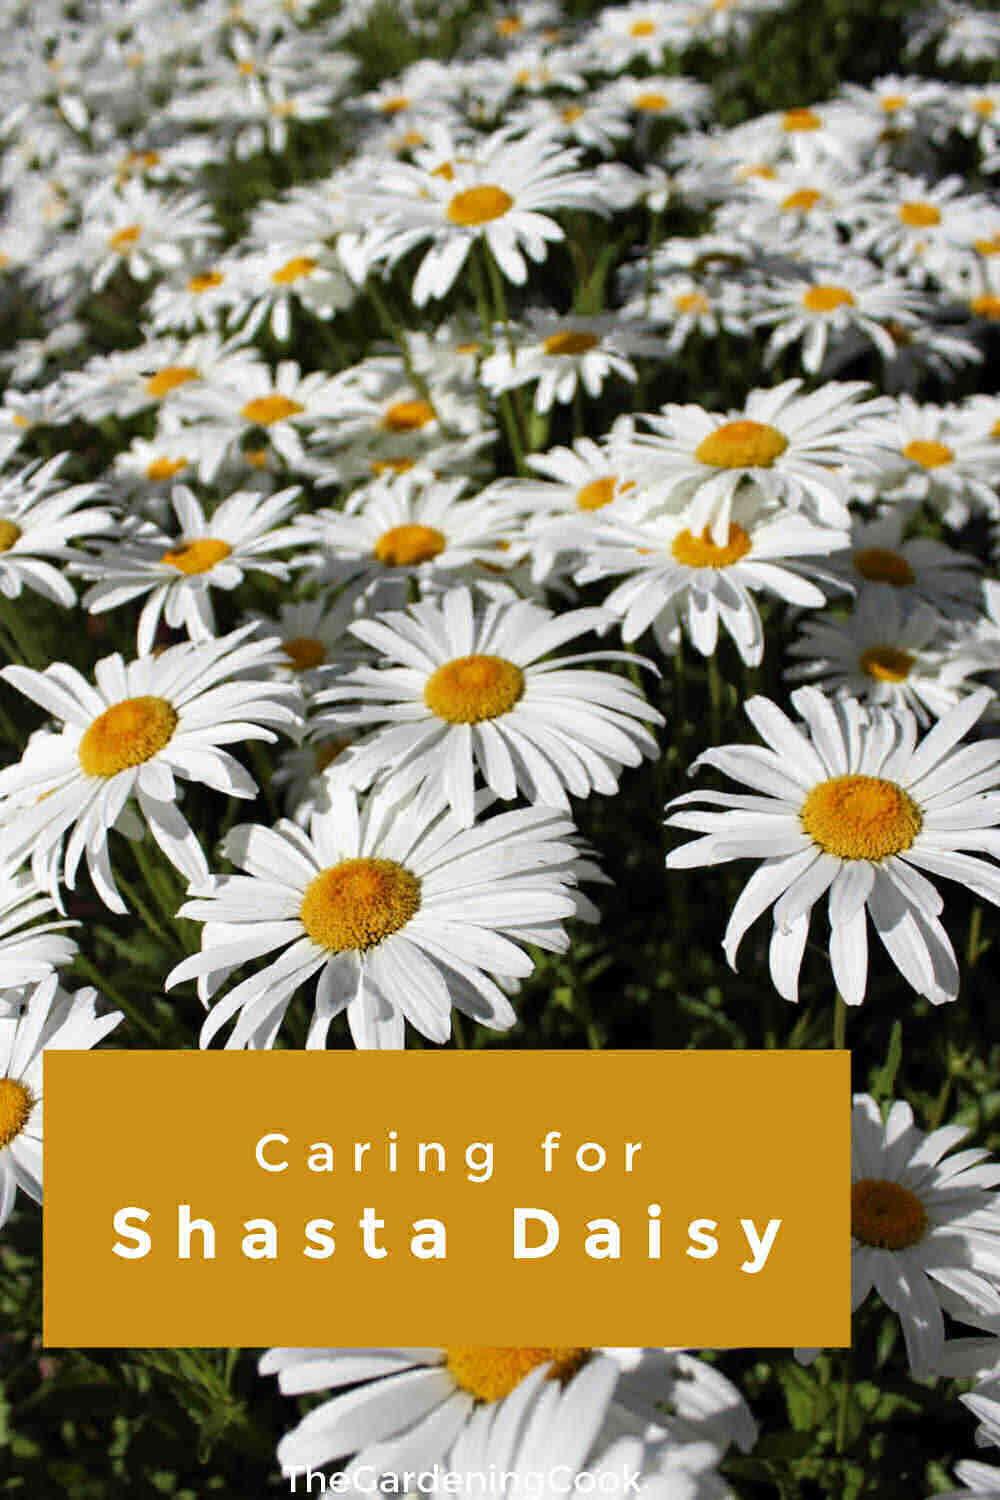 Shasta daisies in a field with text overlay reading caring for Shasta daisiy.